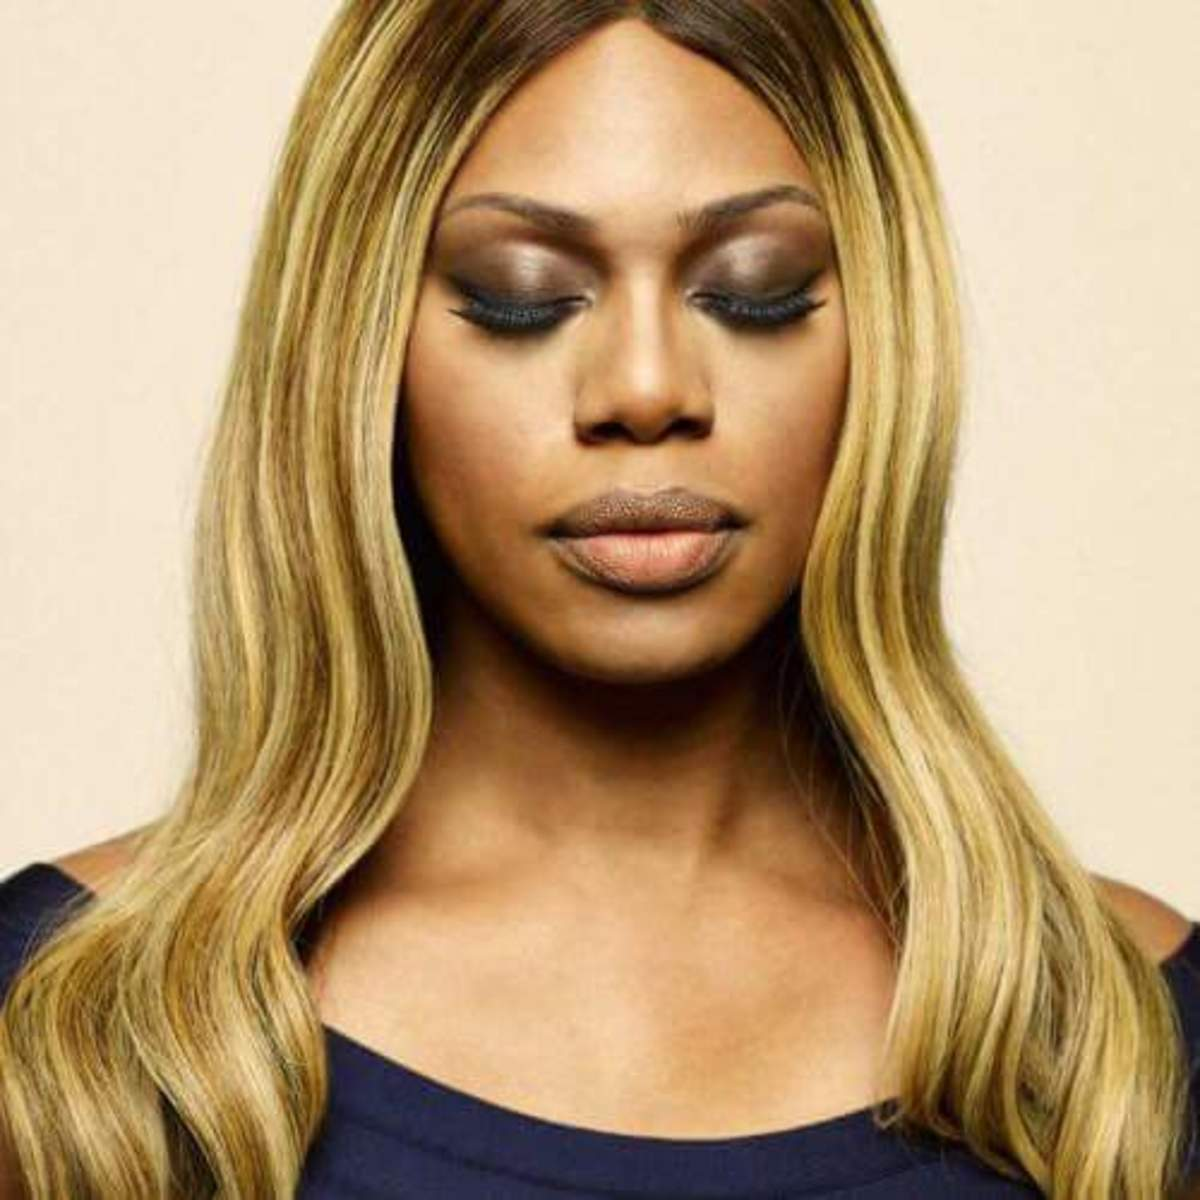 Ignorance Is Strength: Discussing the Possibility of Privilege for Transwomen